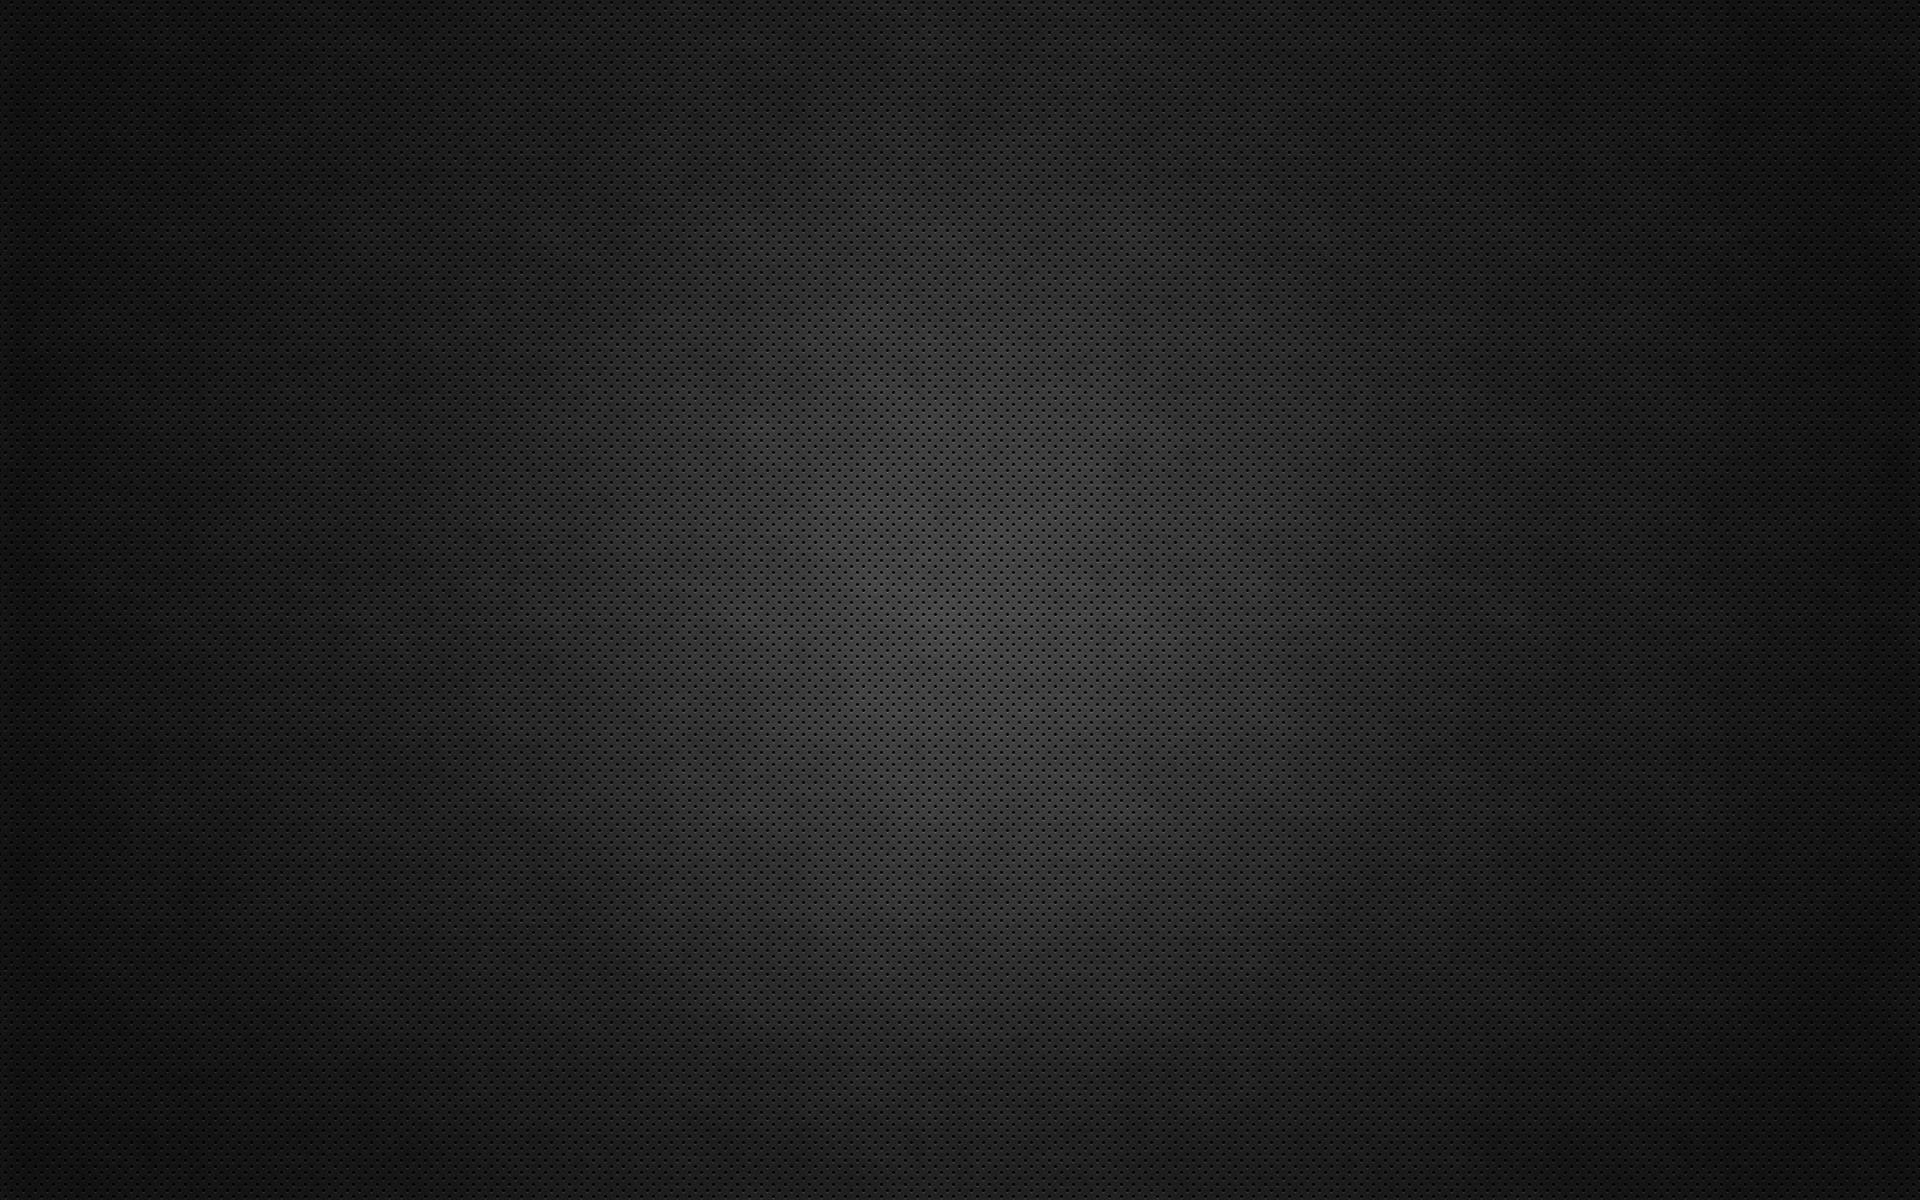 74 Black Metal Wallpaper On Wallpapersafari Find the perfect black metal texture stock photos and editorial news pictures from getty images. black metal wallpaper on wallpapersafari